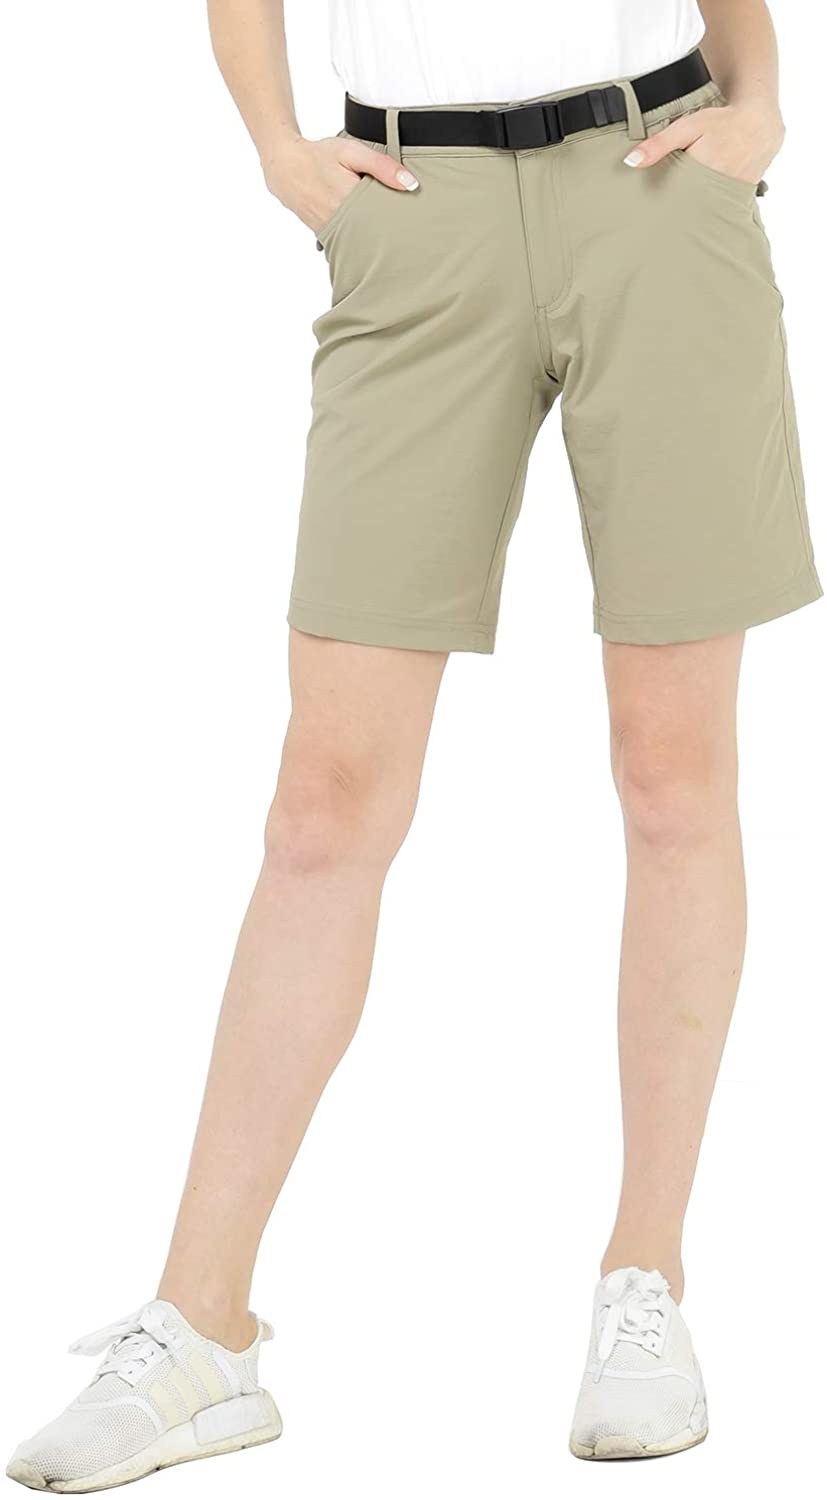 MIER Women's Quick Dry Outdoor Shorts Lightweight Stretch Nylon Hiking Shorts with 5 Pockets, Water Resistant